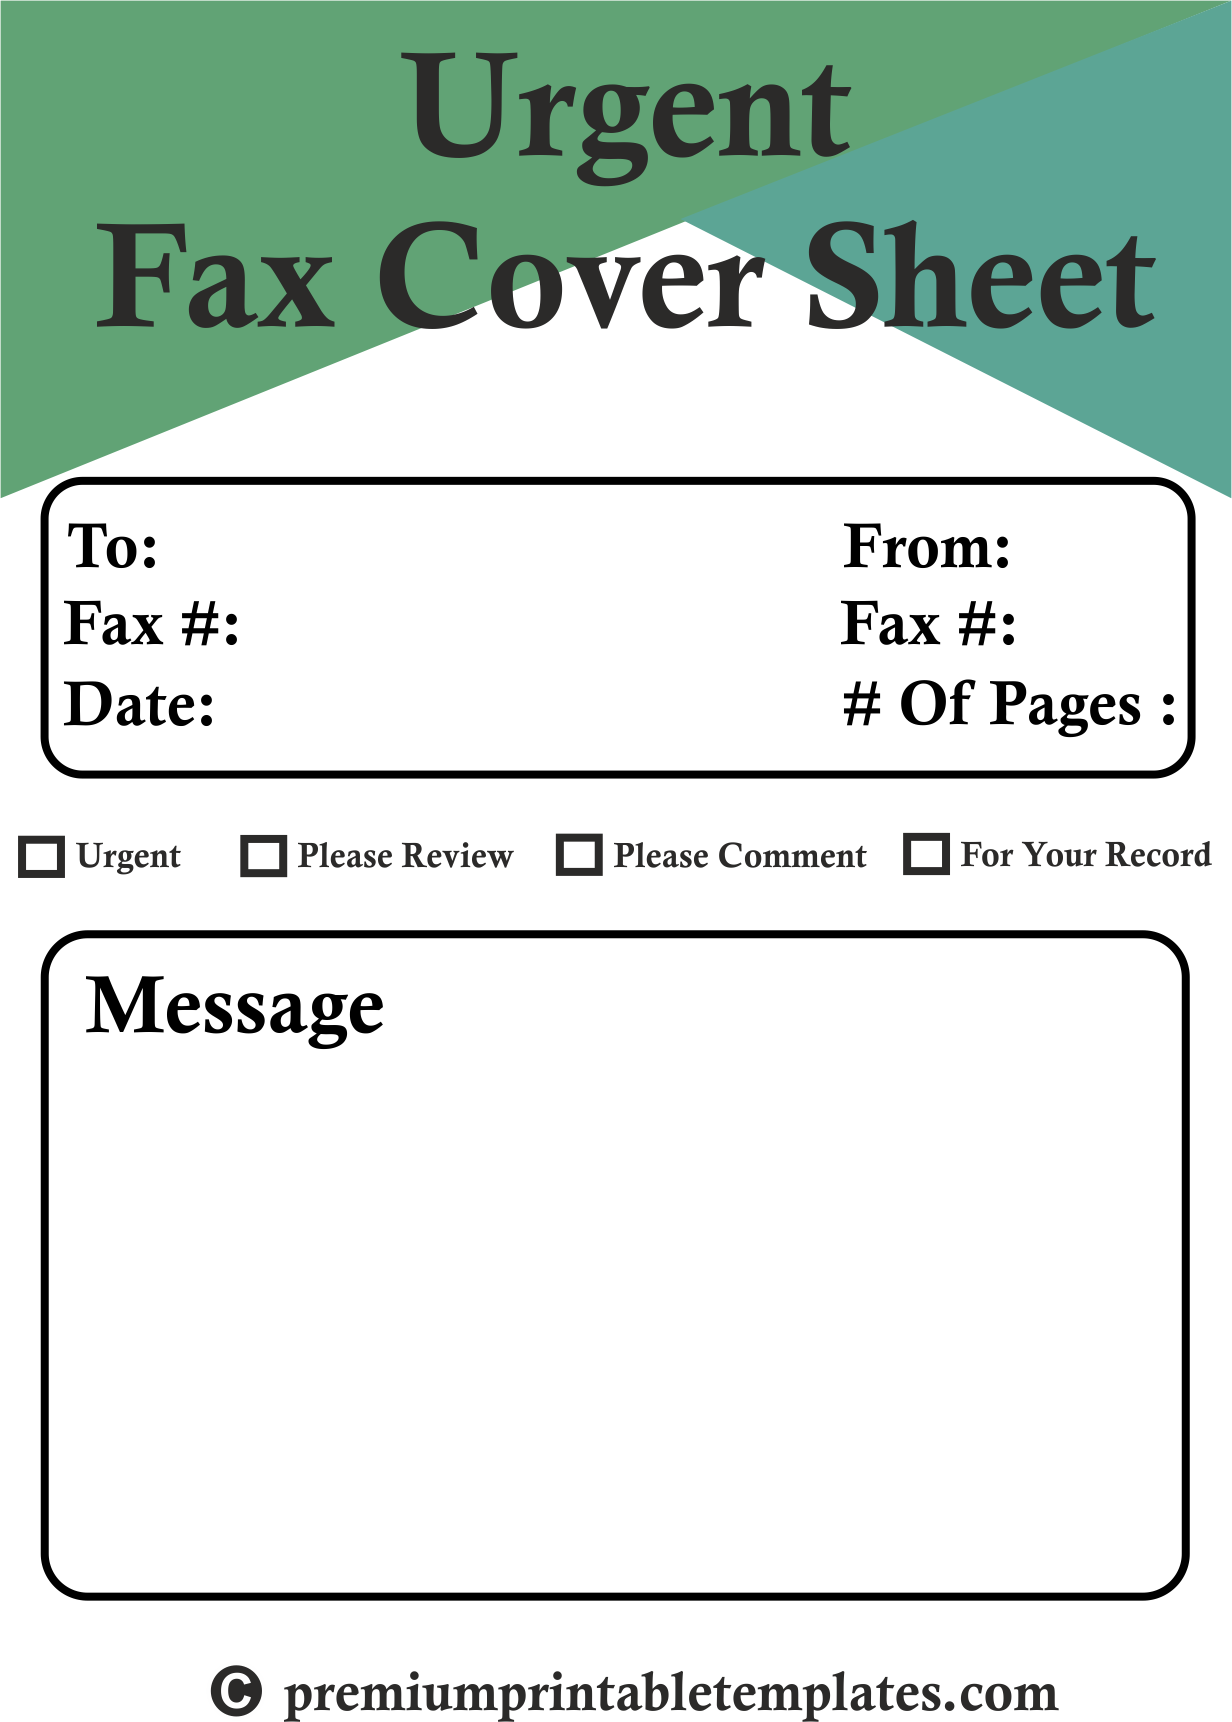 Fax Cover Sheets Templates Urgent Fax Cover Sheet Is The Fax Cover Sheet Which Comes With The .